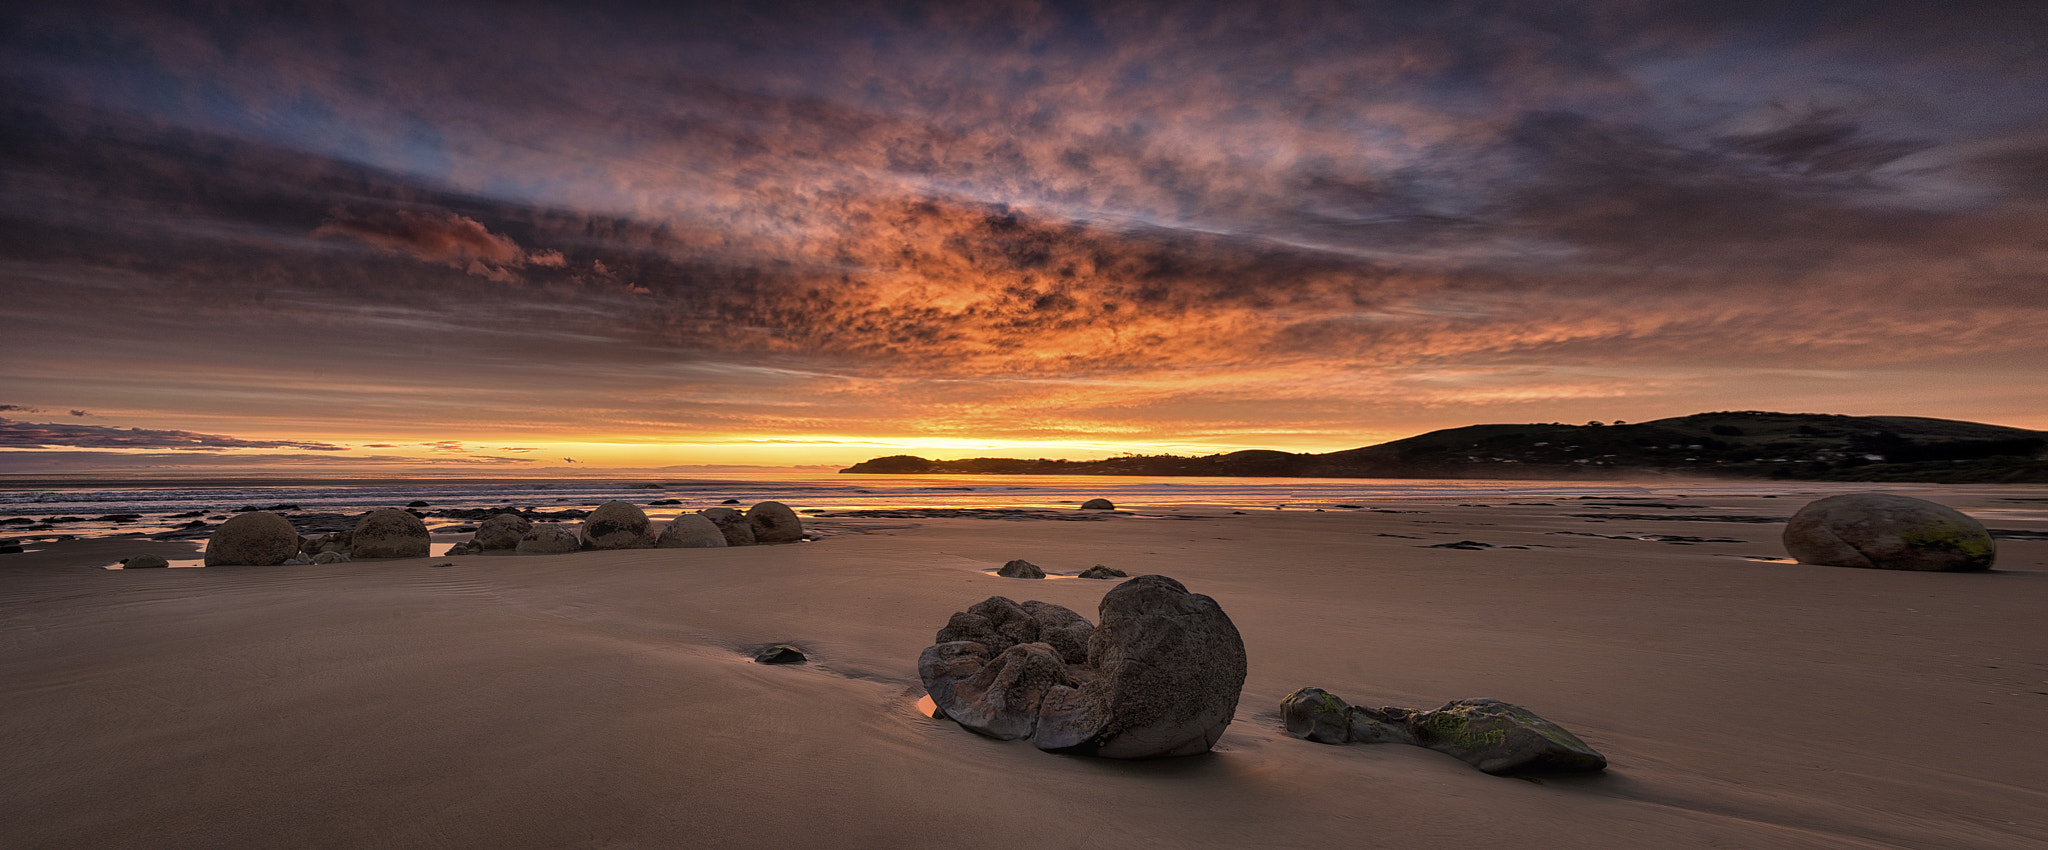 Photograph Moeraki Sunrise by Jay Daley on 500px